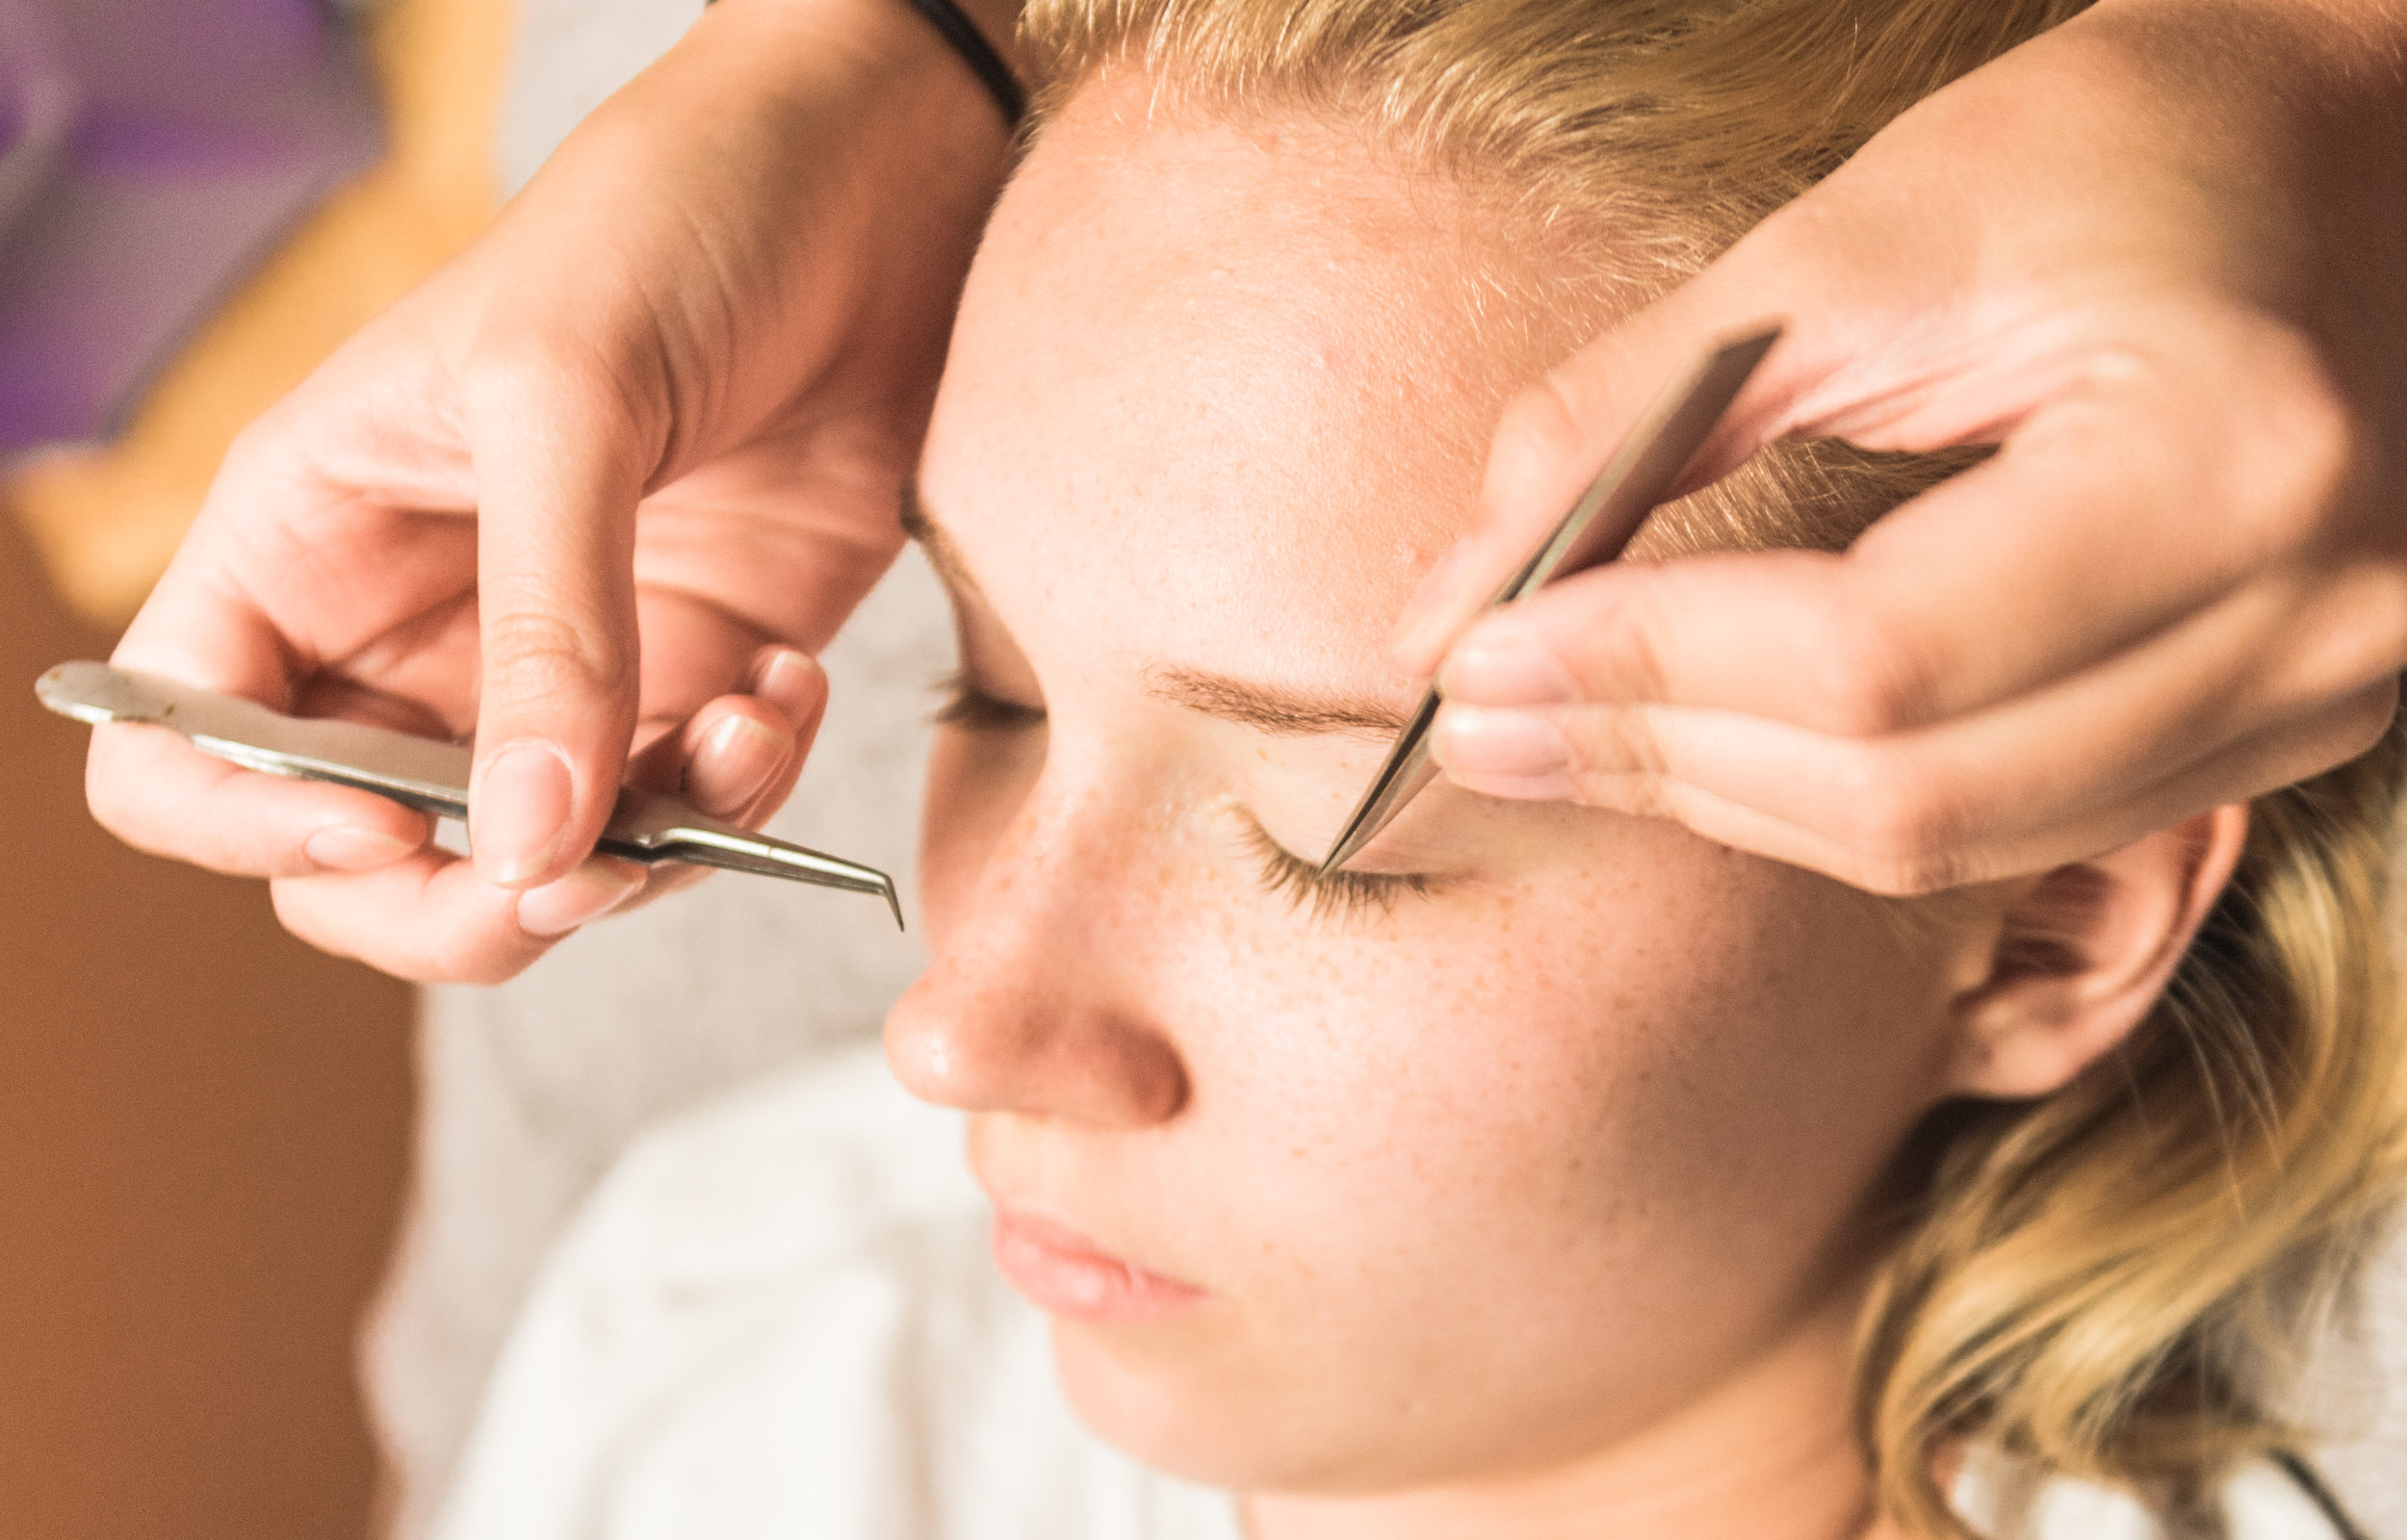 Services - We offer a wide variety of hair, skin, and massage services.